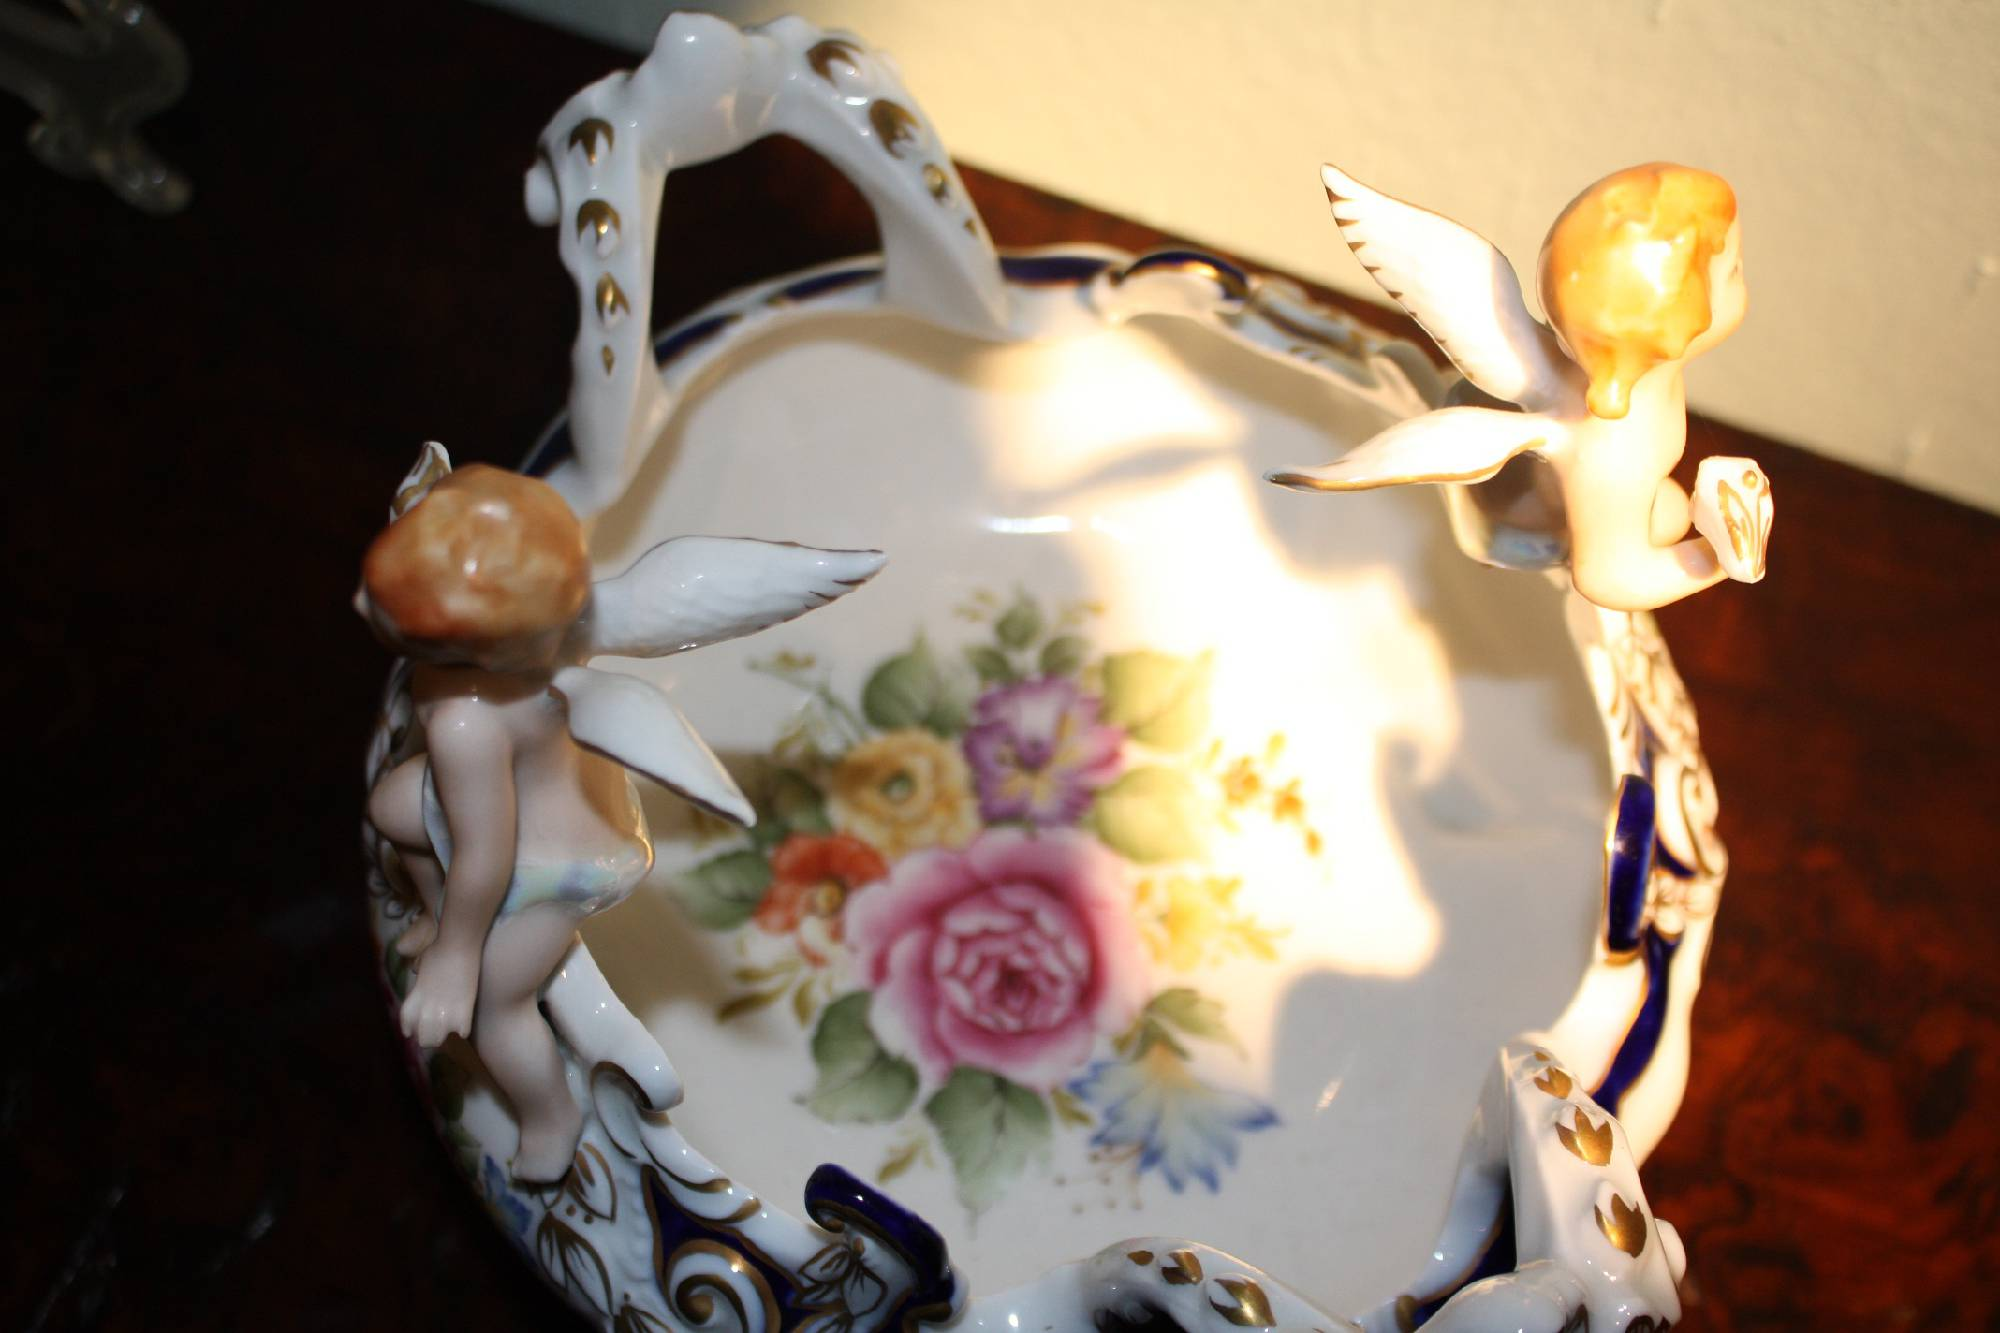 A vintage 20th century figurative putti angels rich ornate 2 handle porcelain dish tray by Kueps